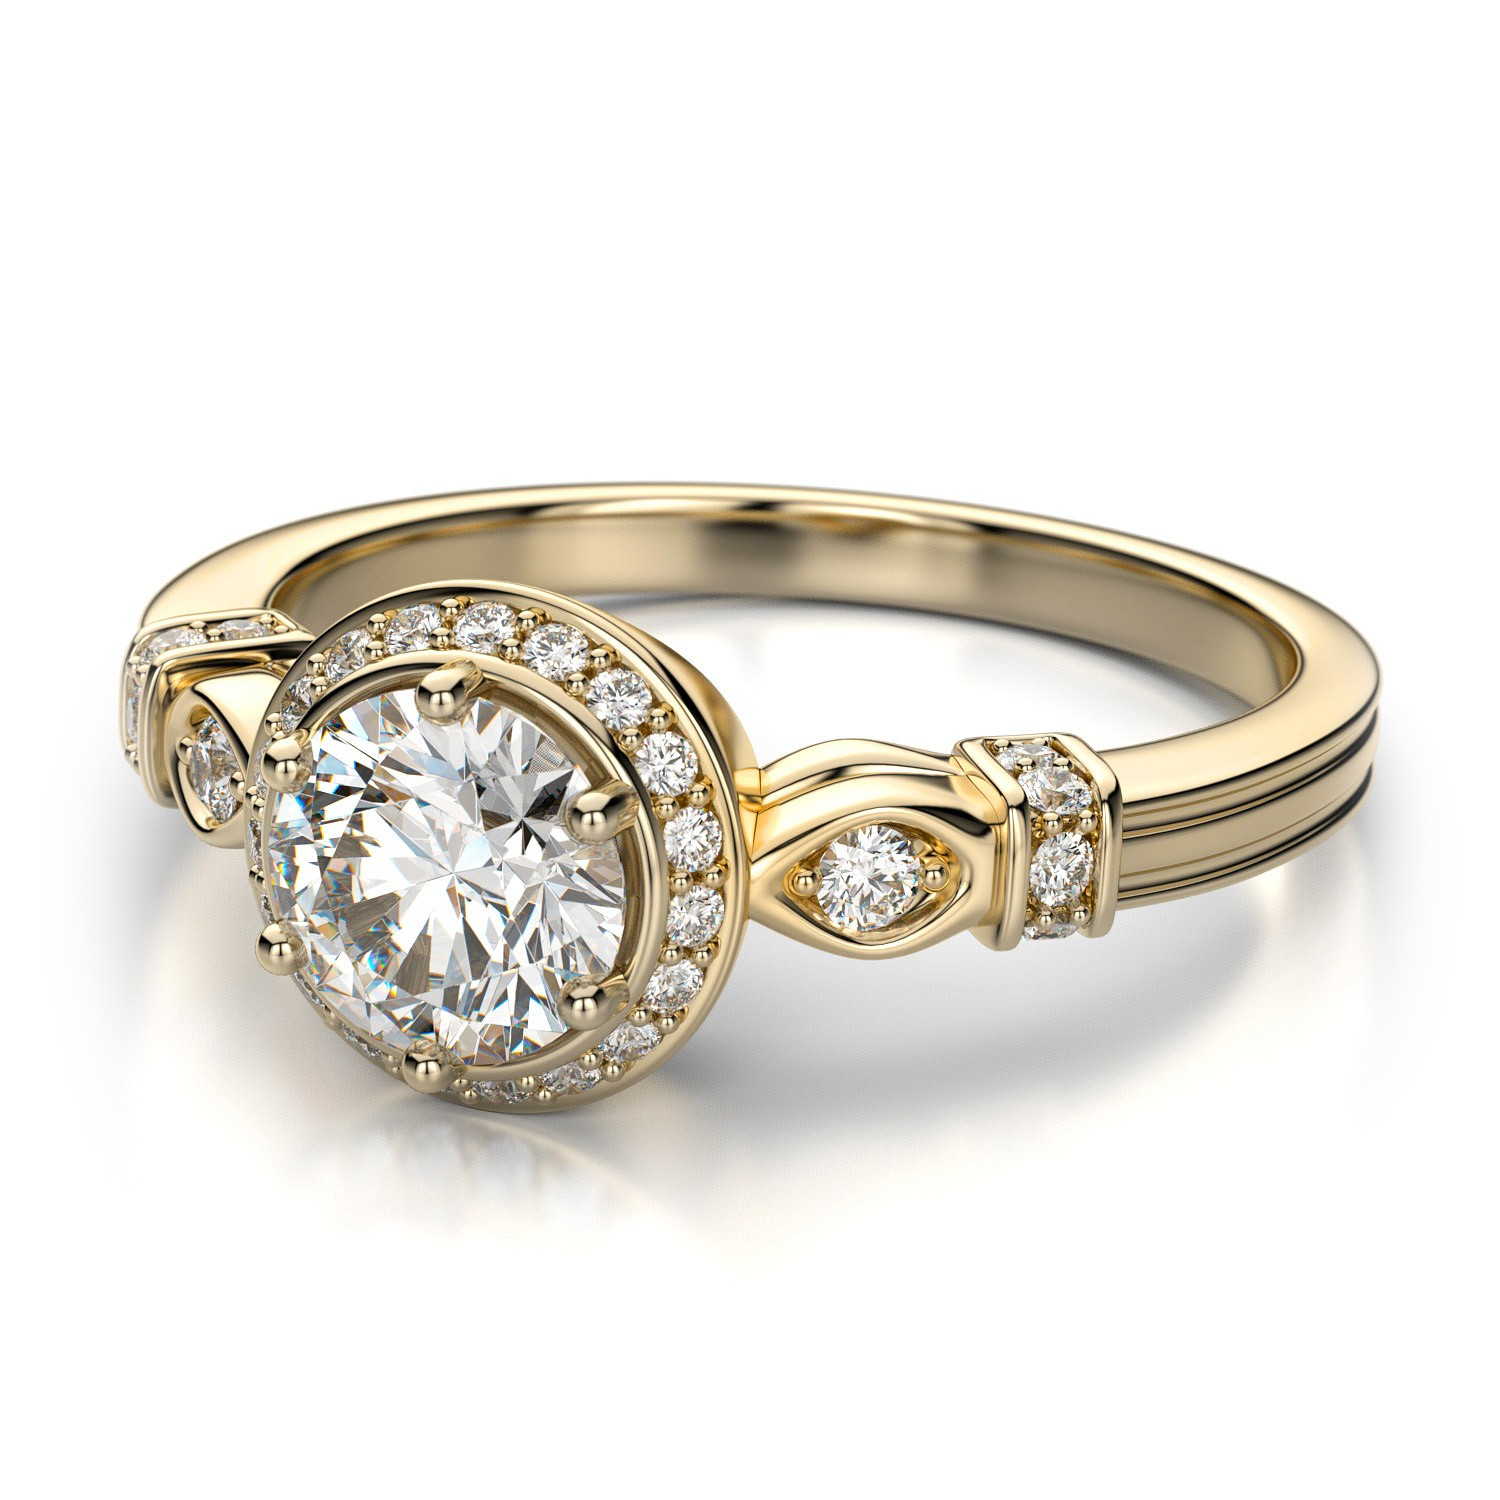 Buy online ANTIQUE ENGAGEMENT RINGS – Pretty Jewelry – Exquisite